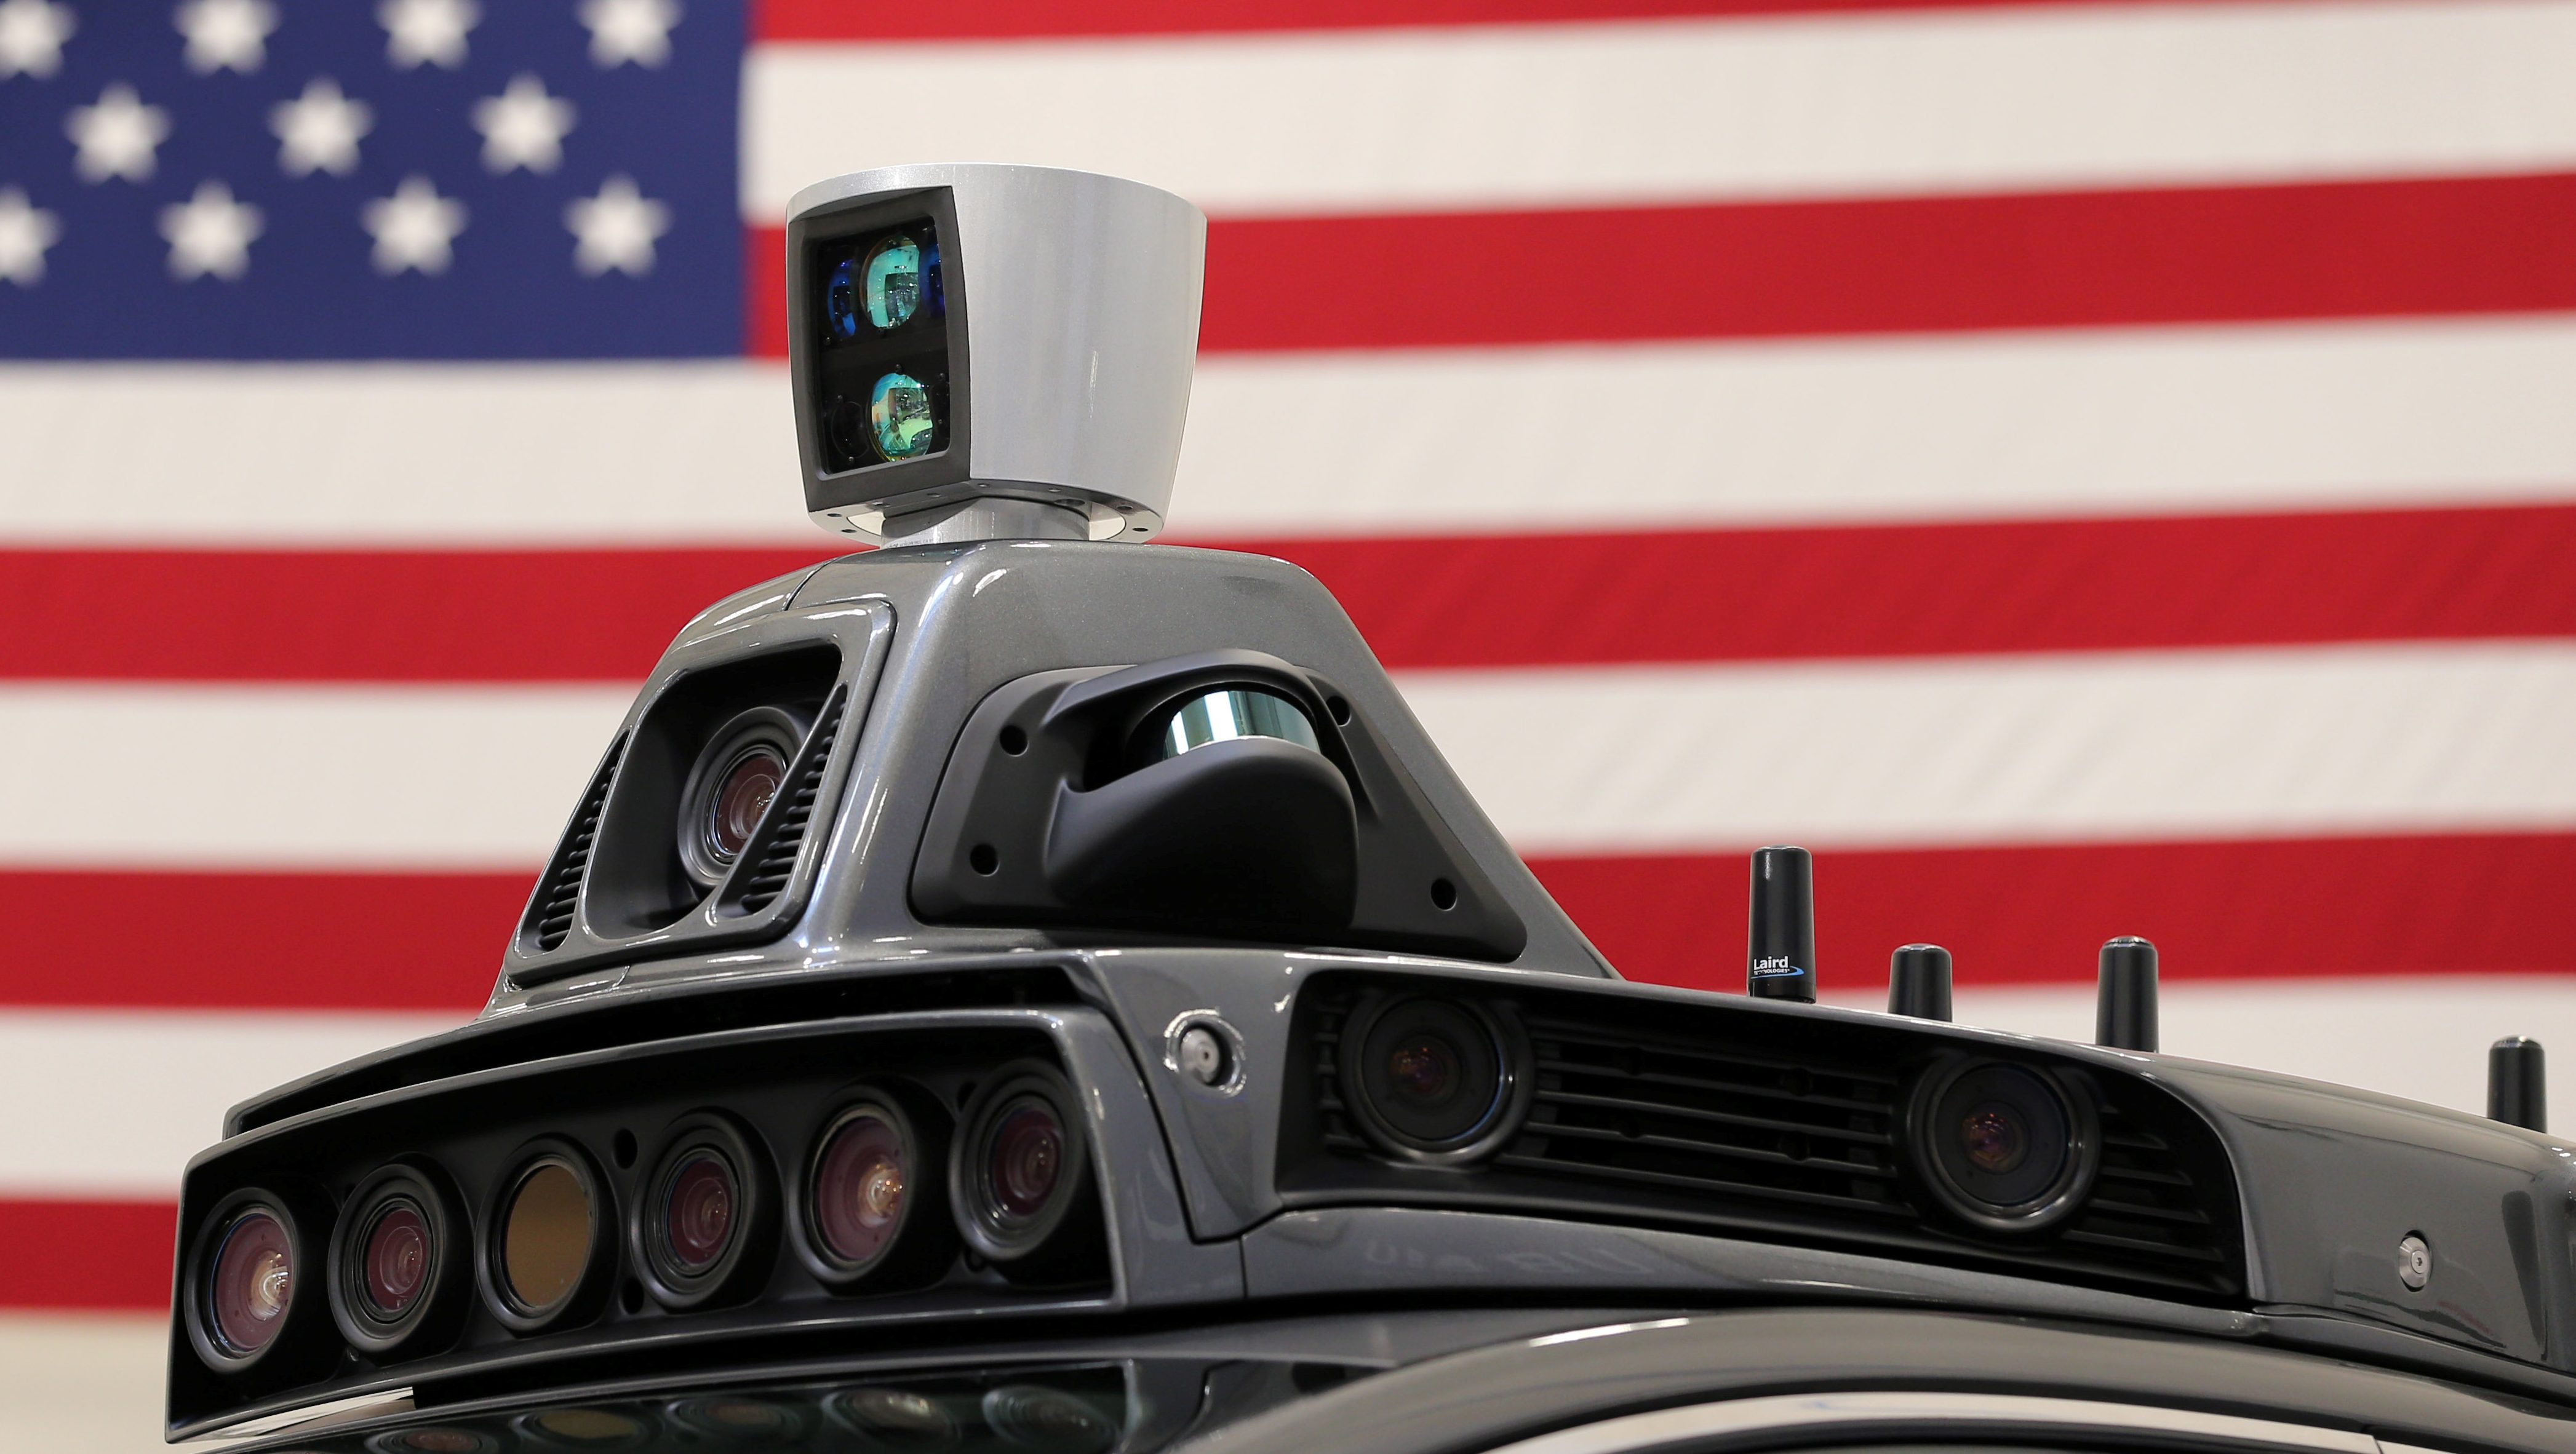 A roof mounted camera and radar system is shown on Uber's Ford Fusion self driving car during a demonstration of self-driving automotive technology in Pittsburgh, Pennsylvania, U.S. September 13, 2016. REUTERS/Aaron Josefczyk - S1BEUBFRVFAB